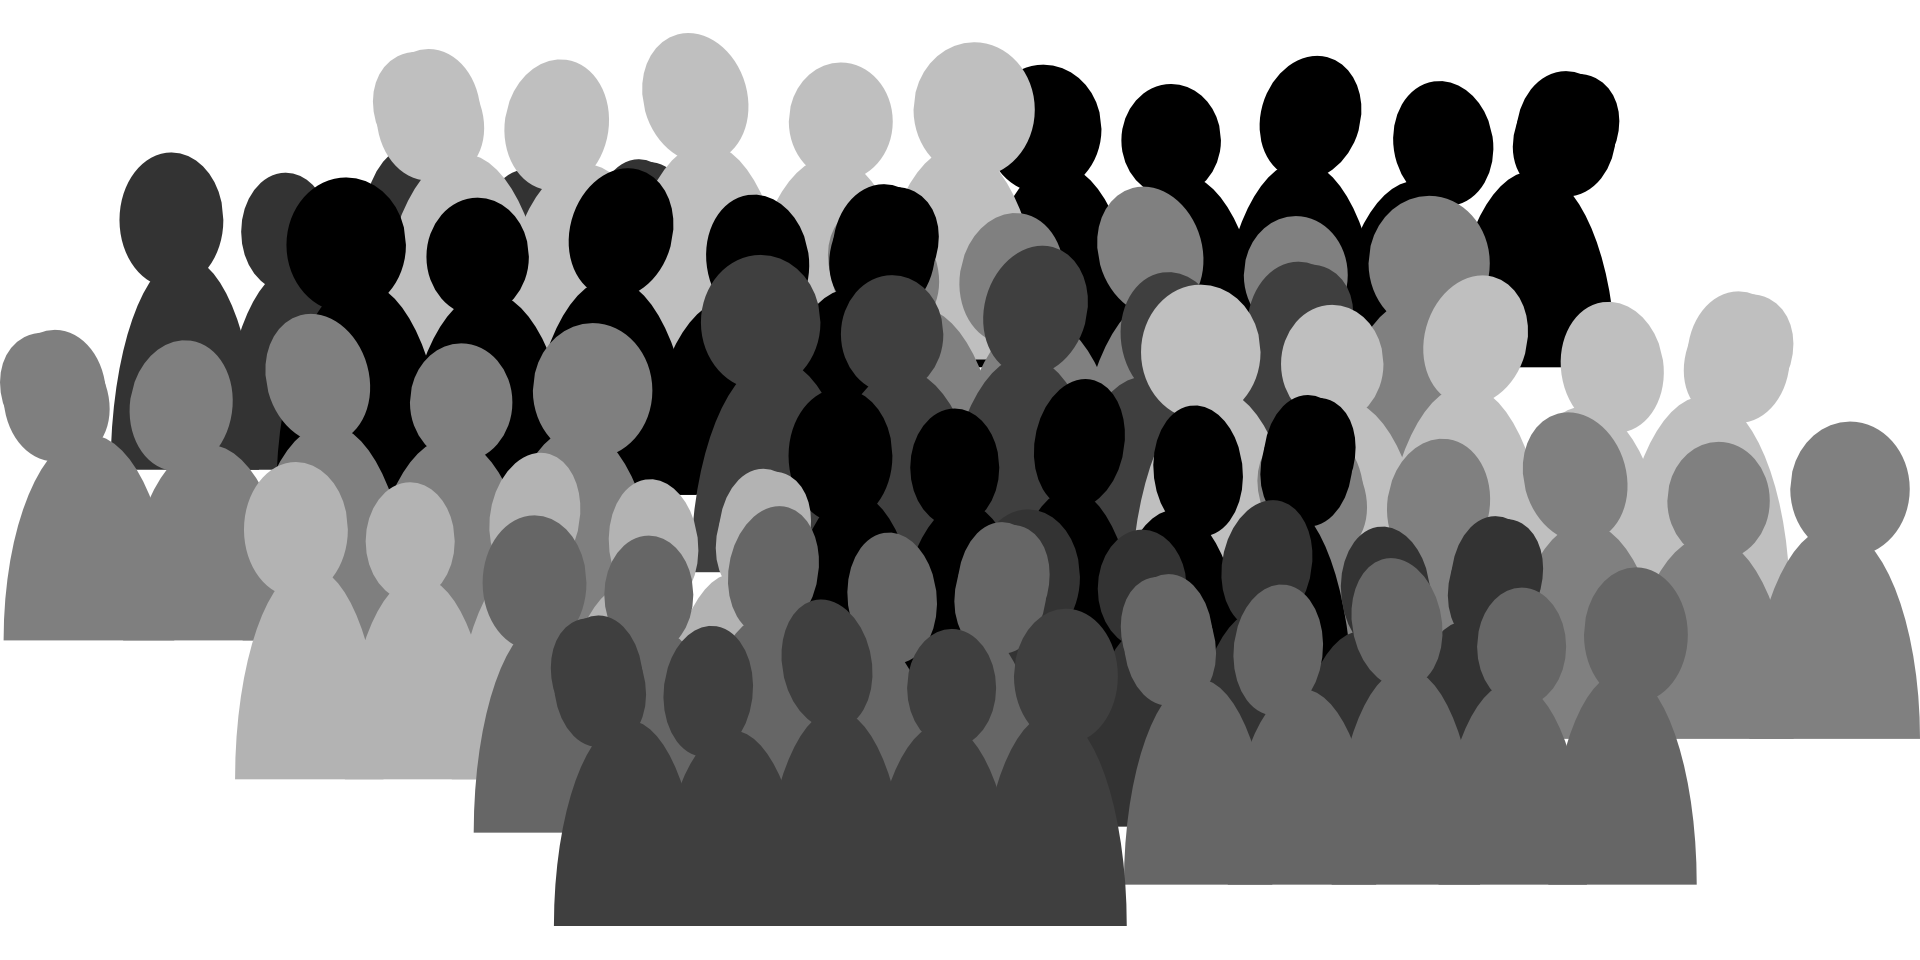 Humans clipart many. Audience shadow person free